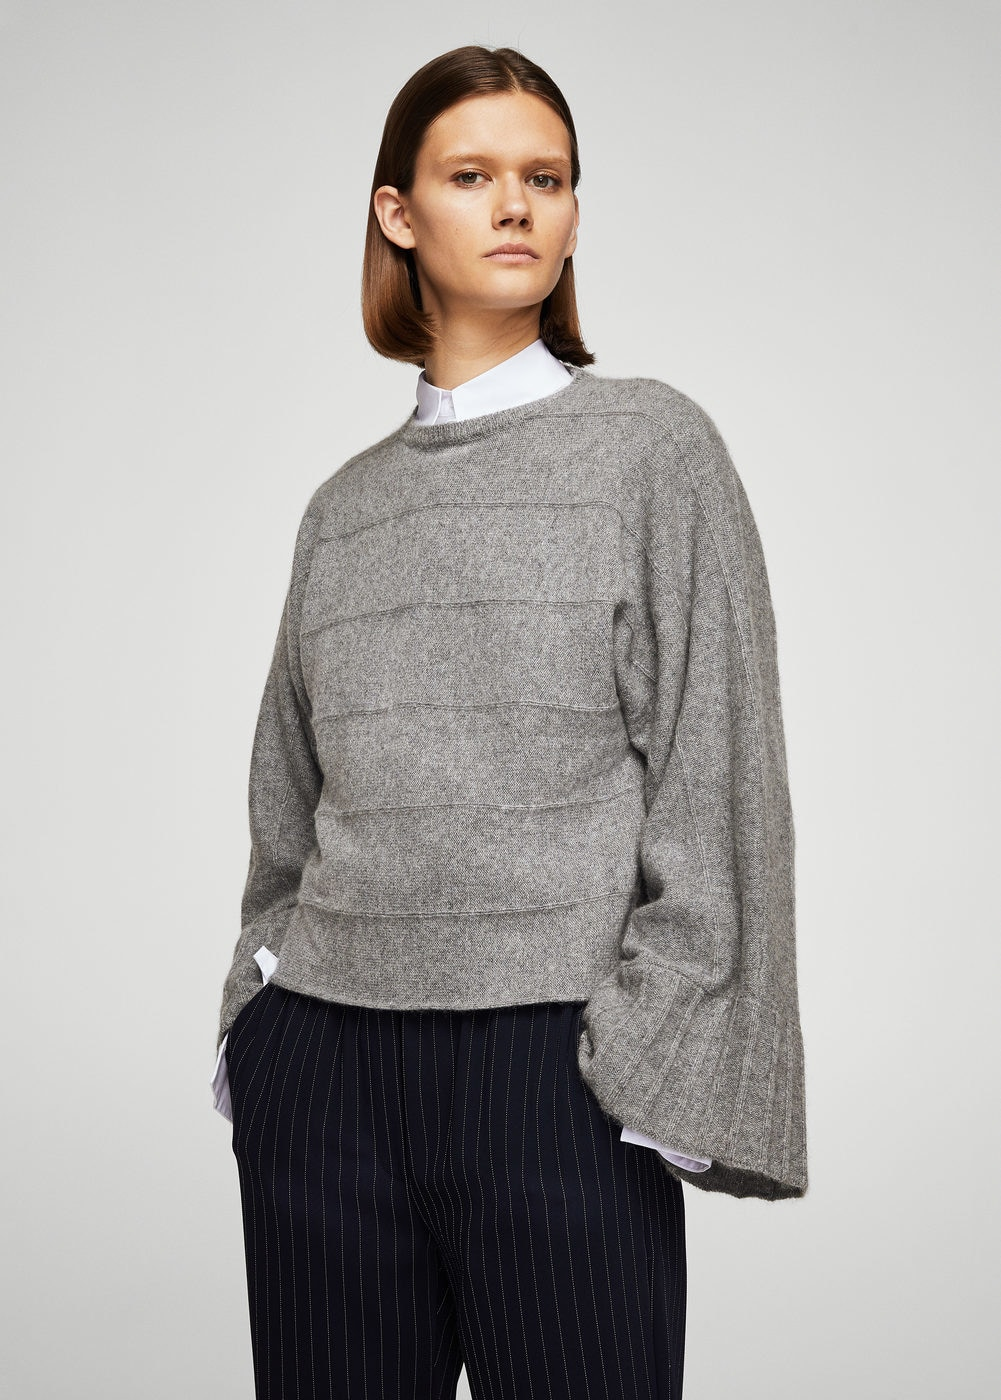 Not-Your-Average Cashmere Sweaters